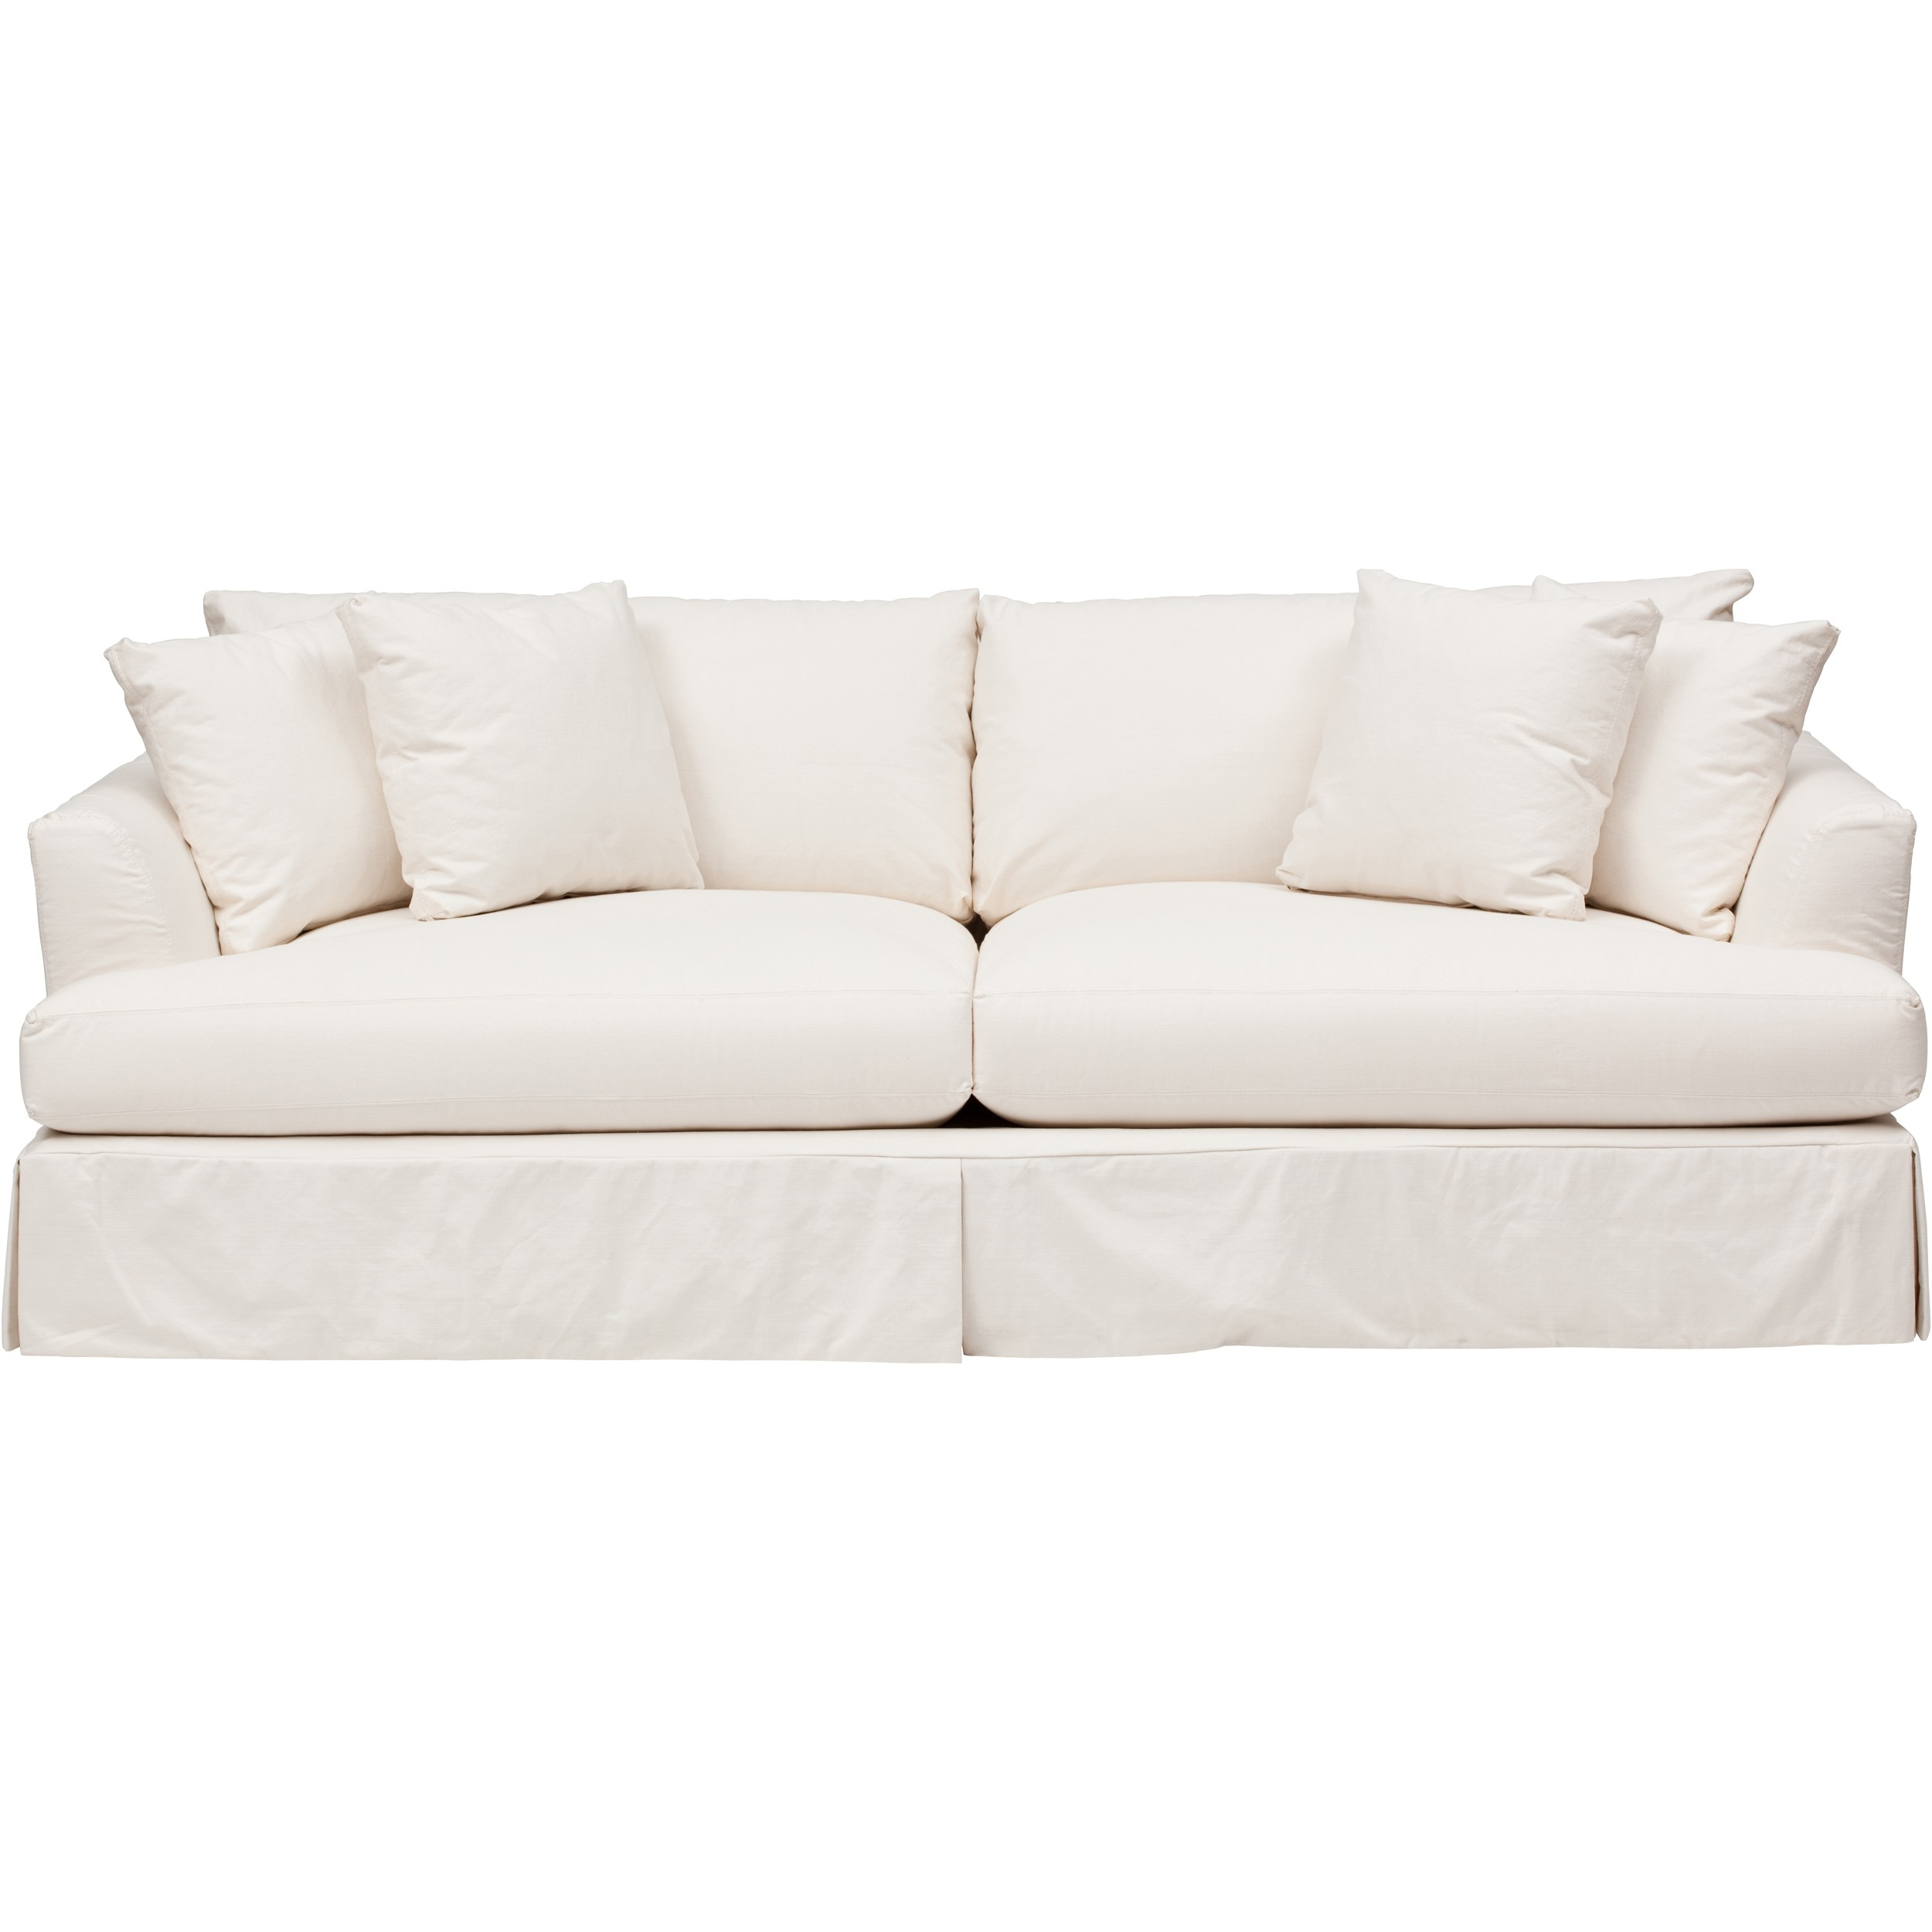 Sofas Center White Slipcovers For Sofa Namur Herringbone Ivory Intended For Slipcovers For Sofas And Chairs (Image 15 of 15)